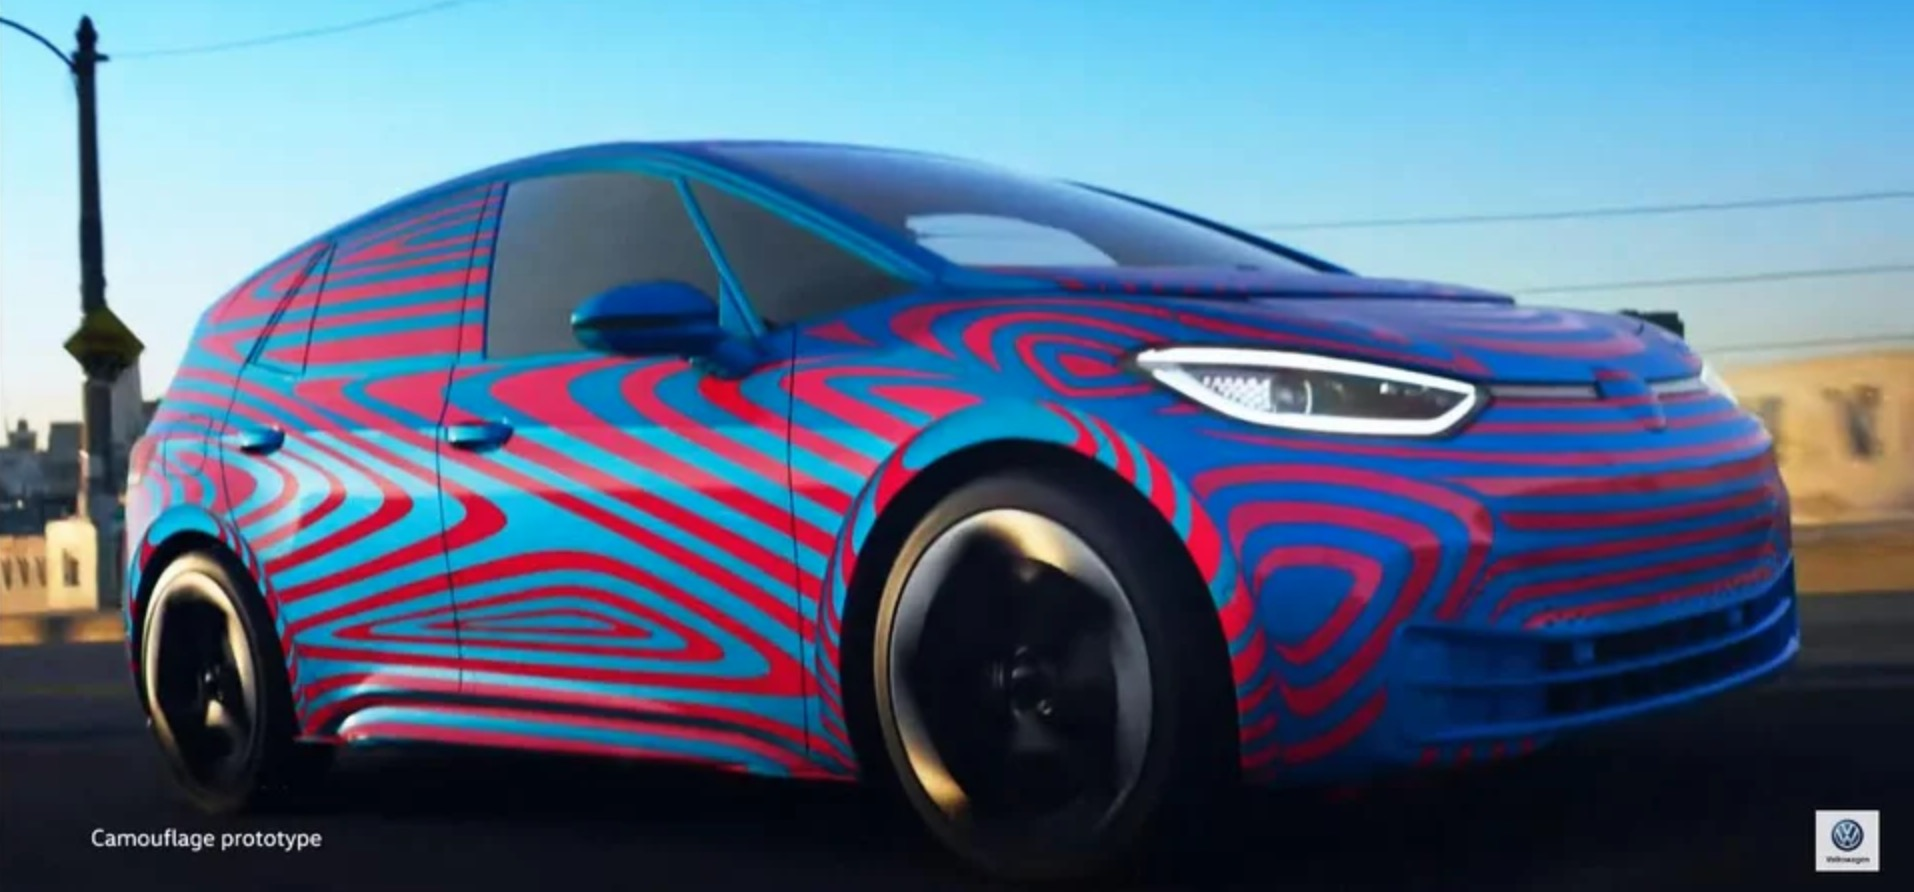 new look at vw u0026 39 s id all-electric hatchback